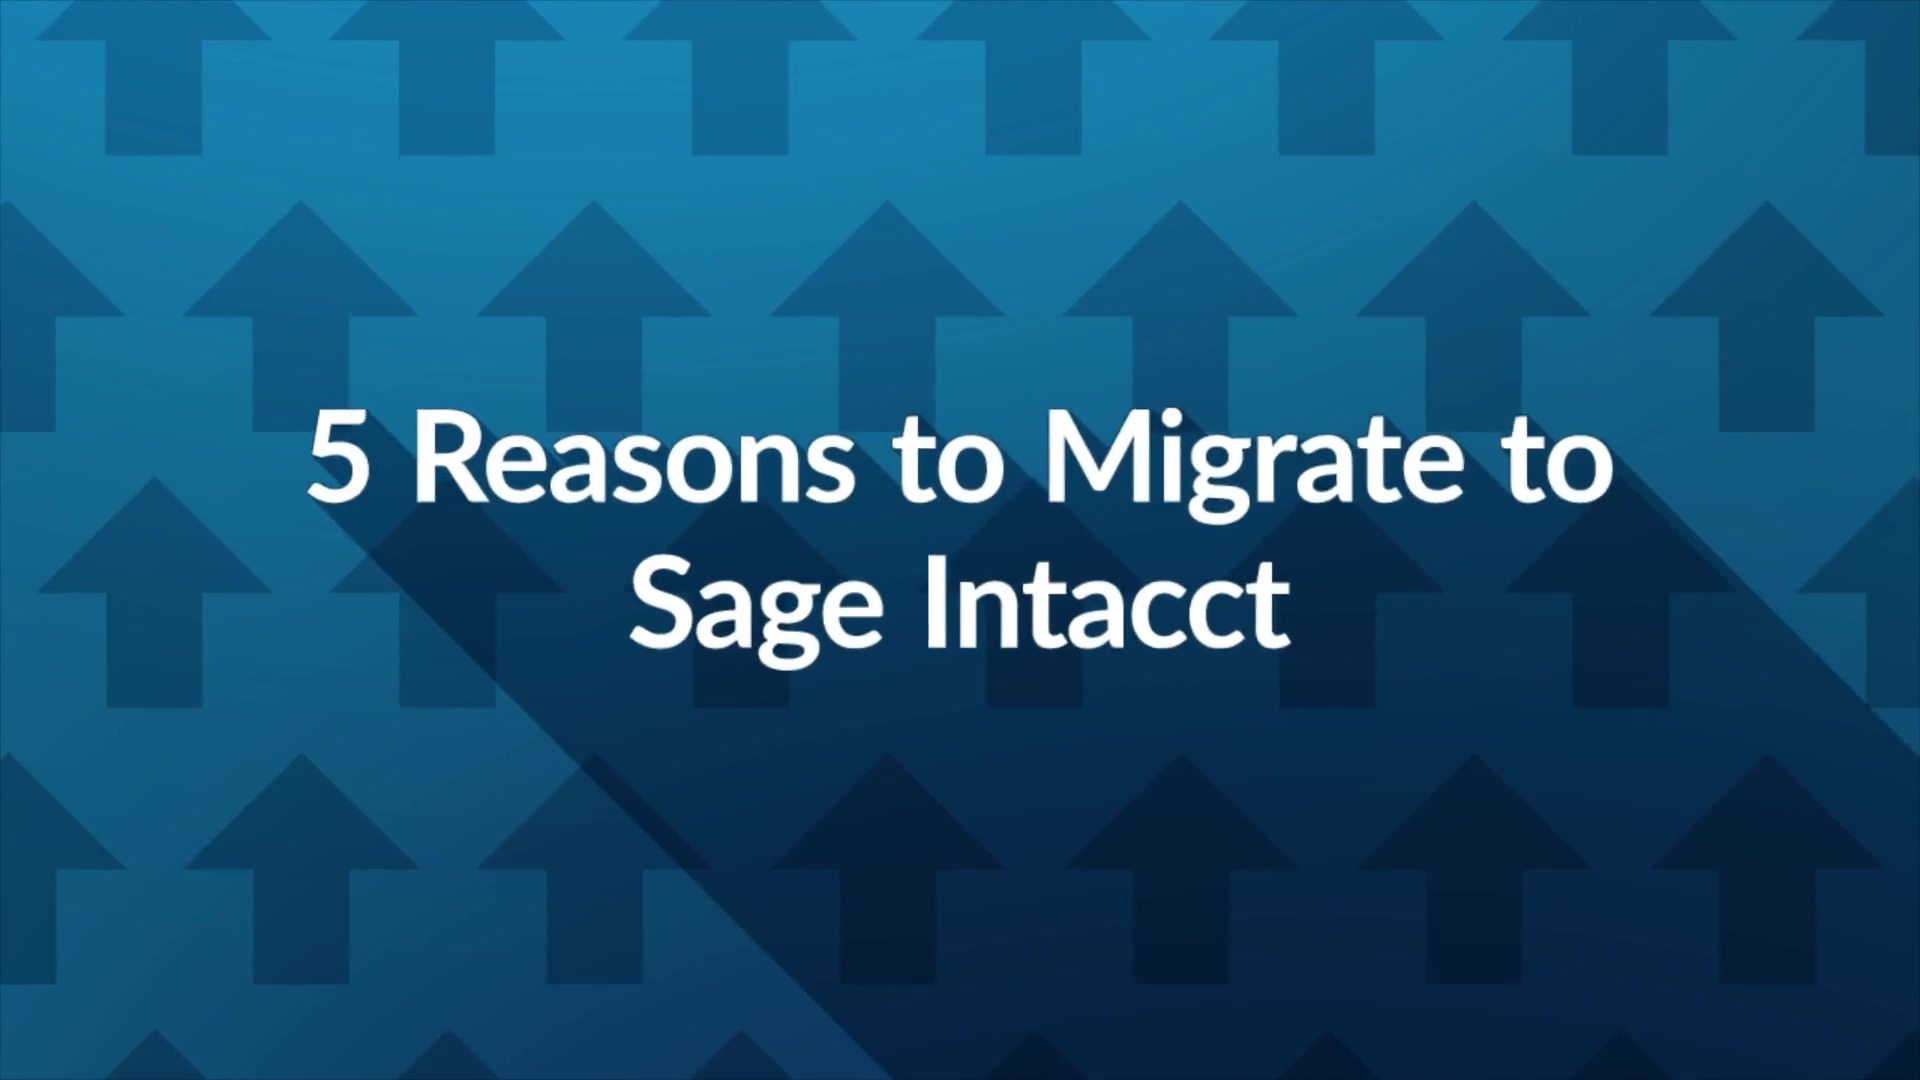 5-reasons-organizations-migrate-to-intacct